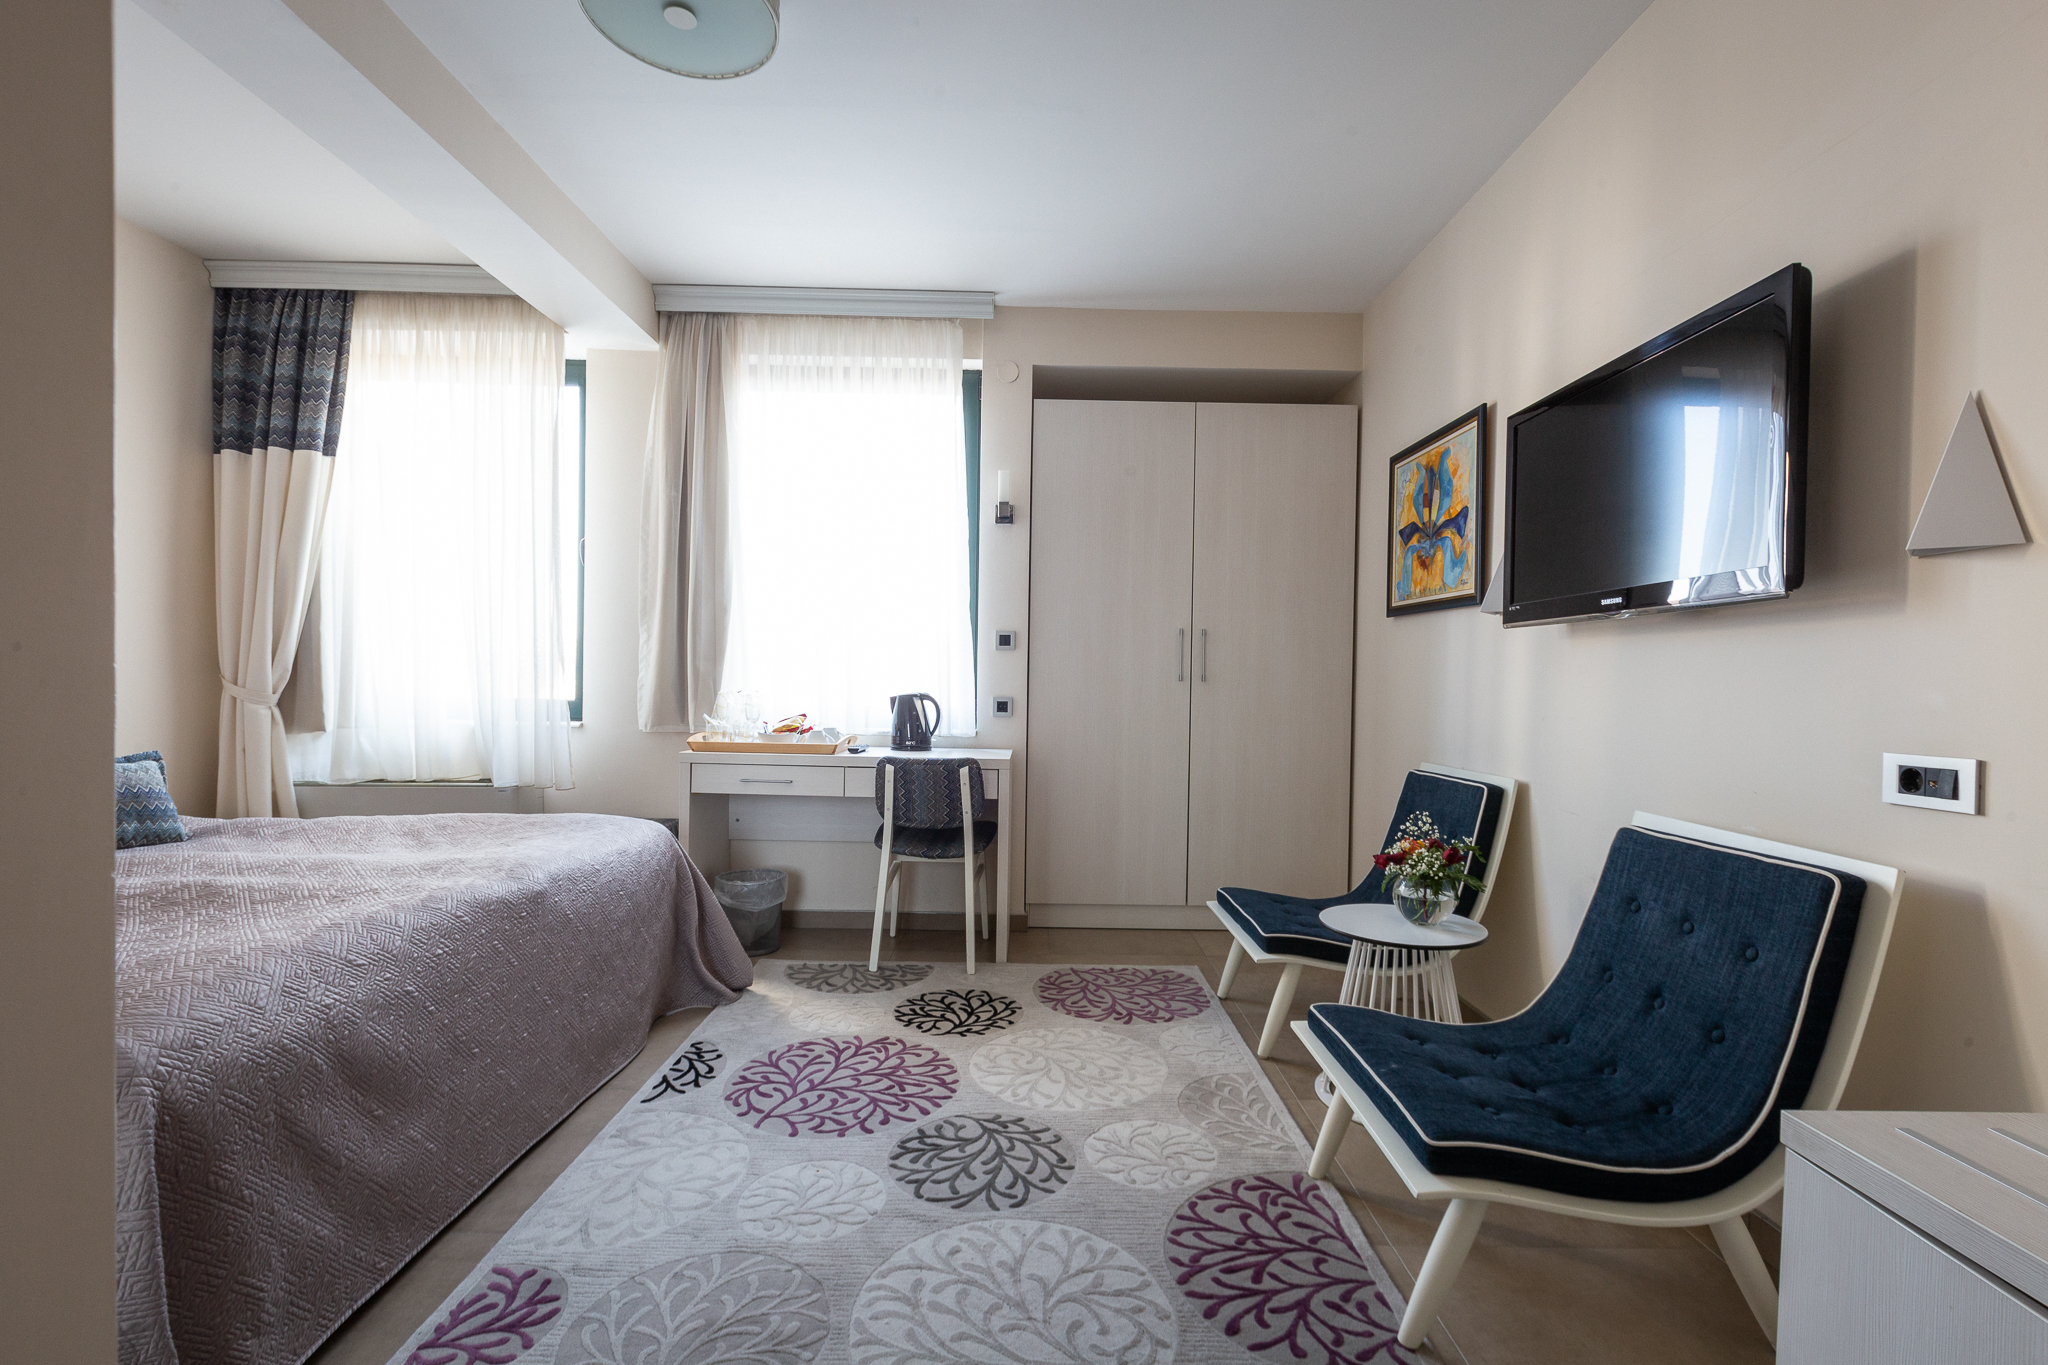 3rd Floor Double Room French Bed